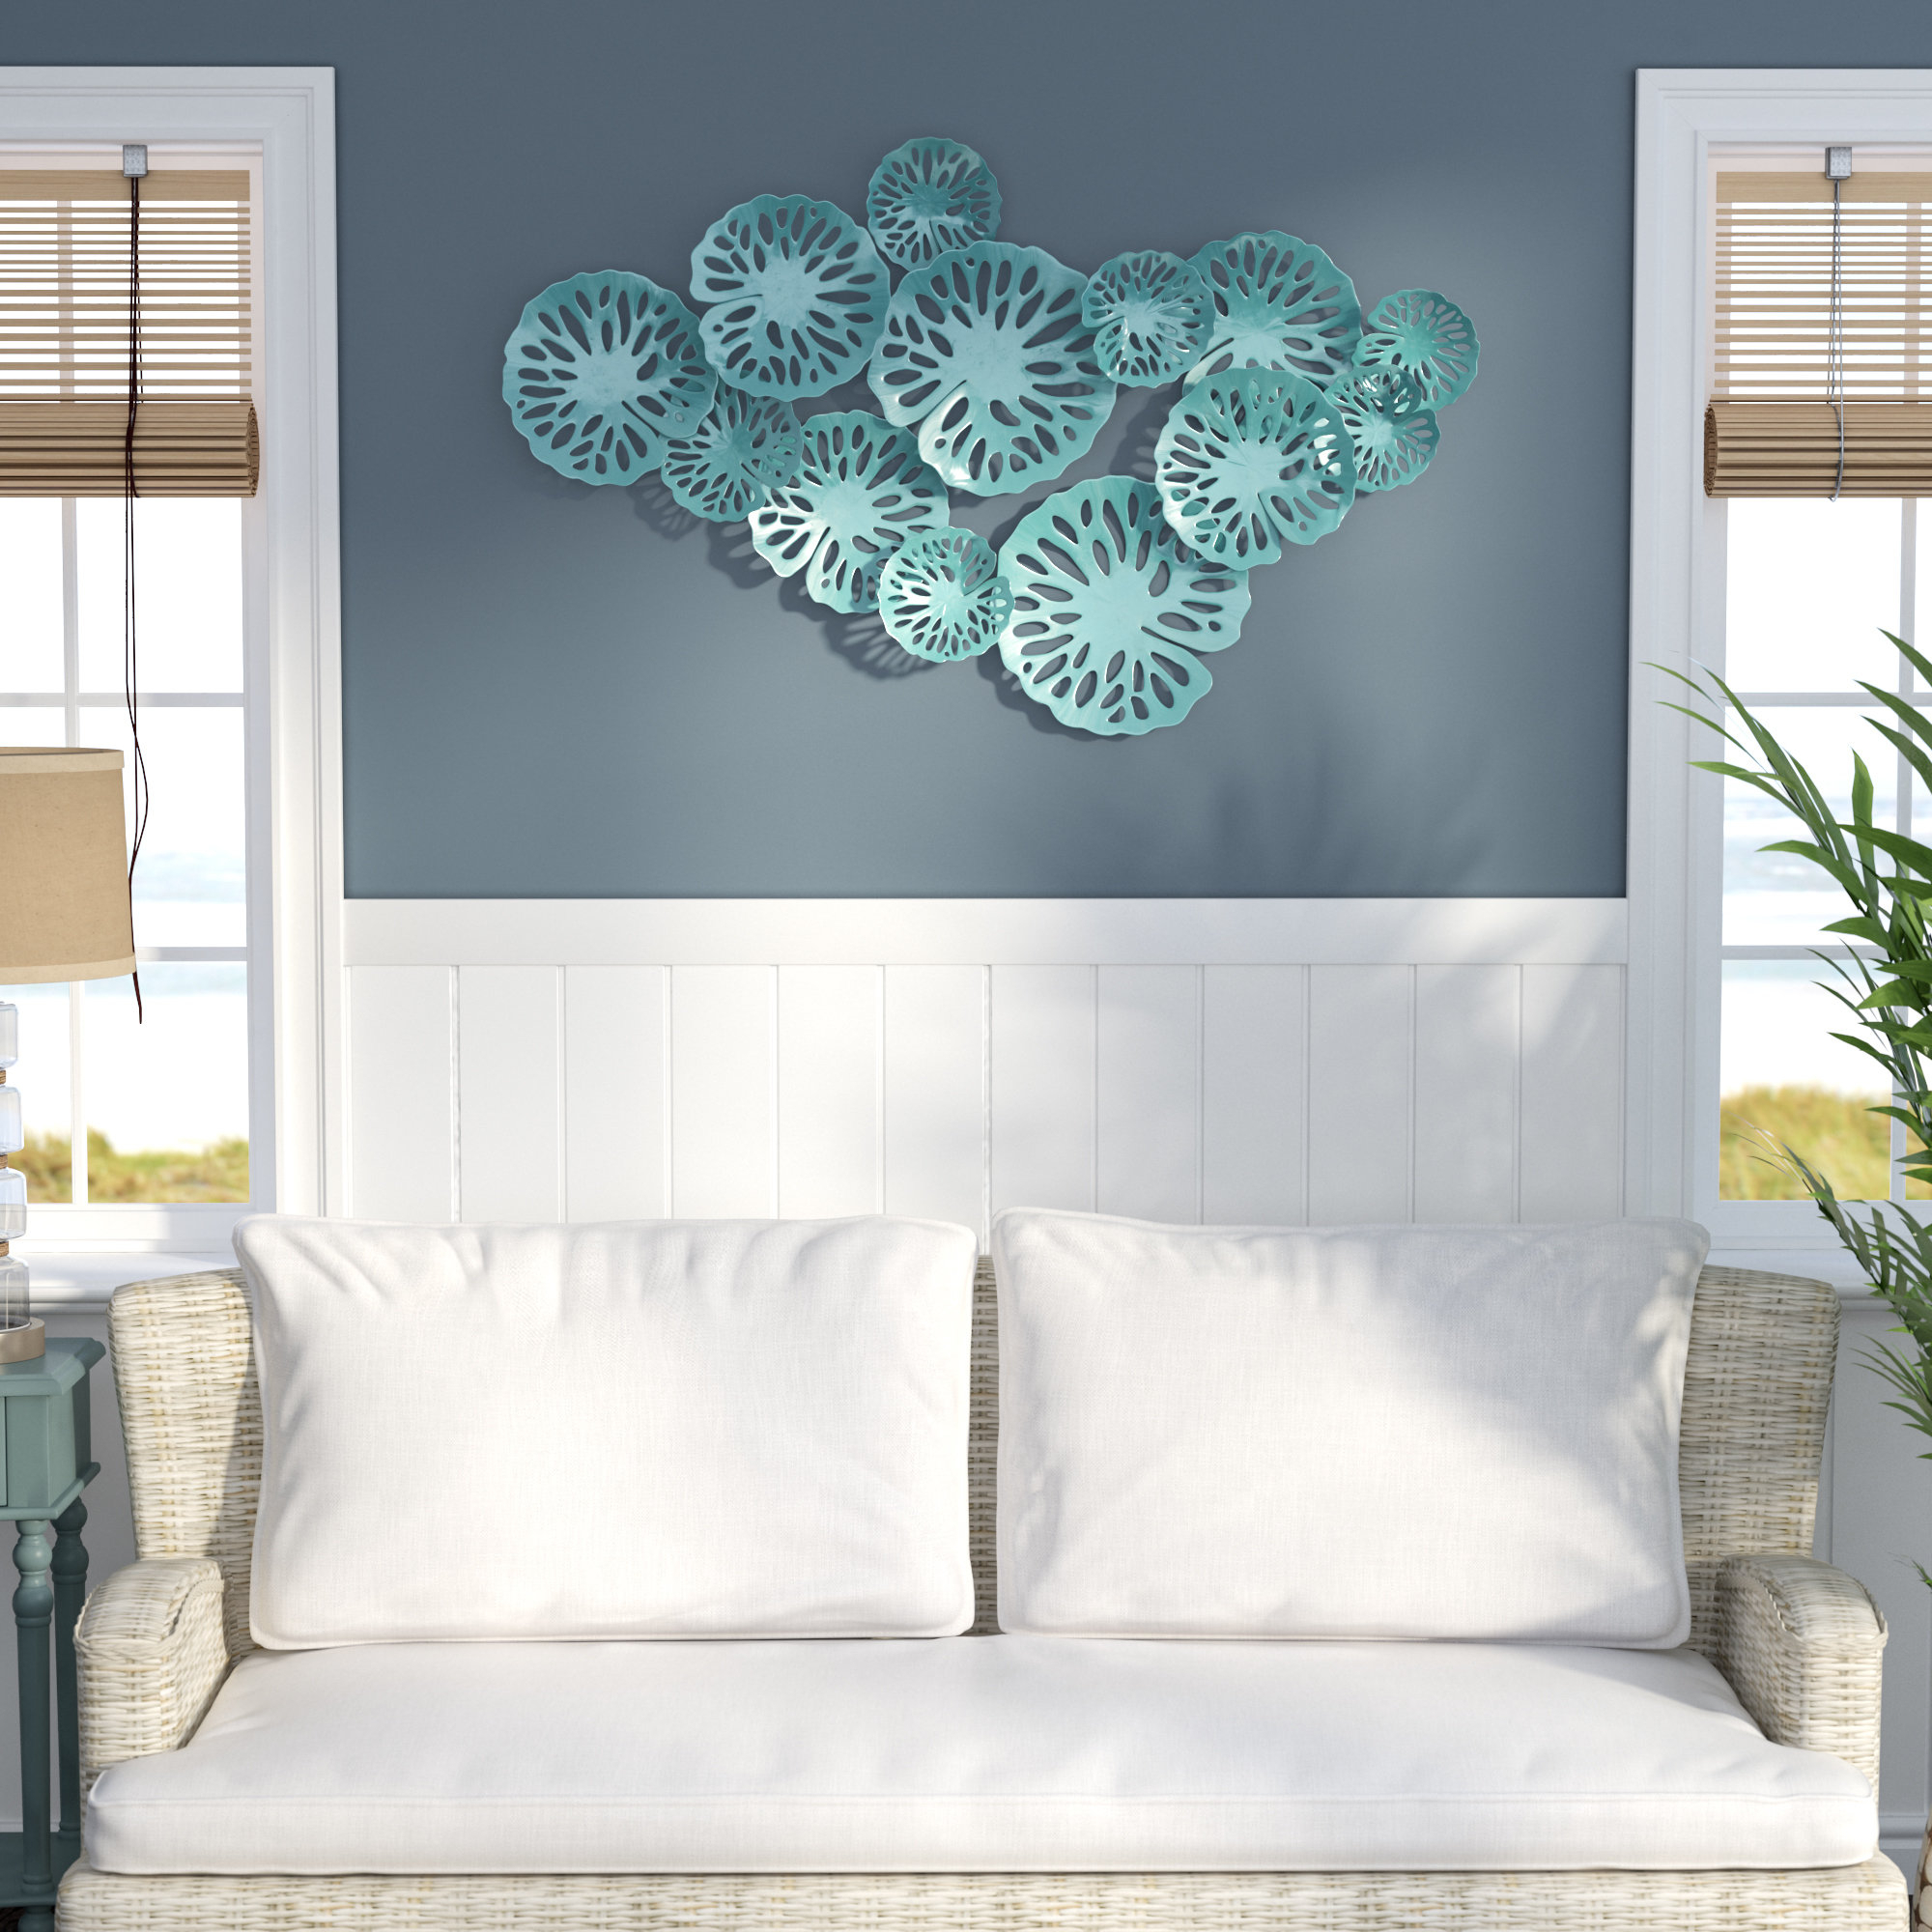 Wayfair Intended For Latest Rhys Turtle Decor Wall Decor (View 18 of 20)